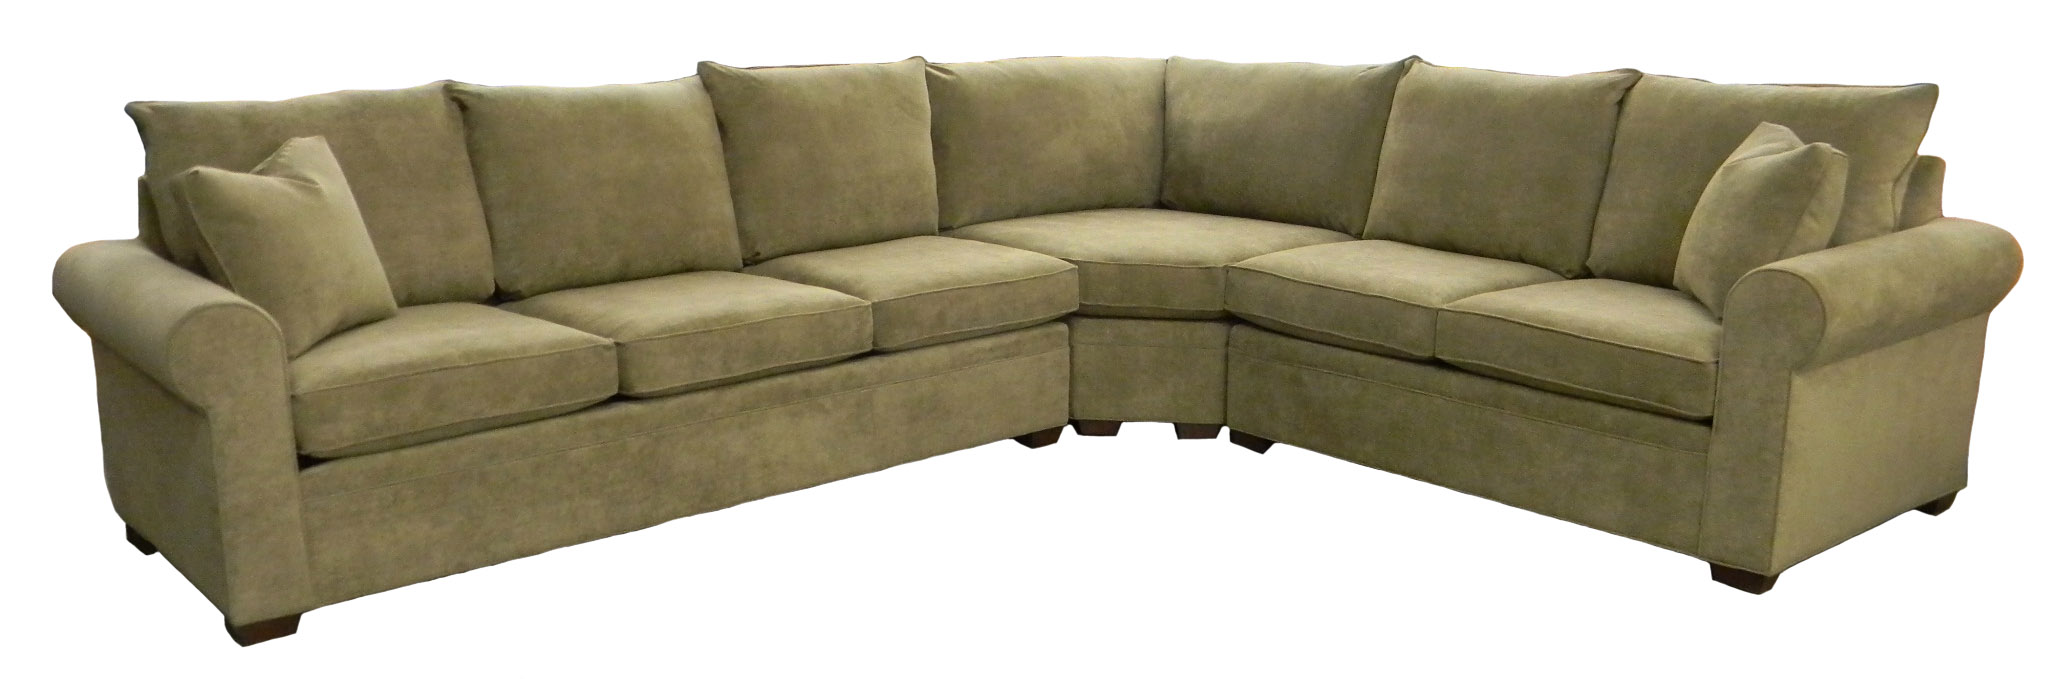 Byron Sectional Sofa Hipsher